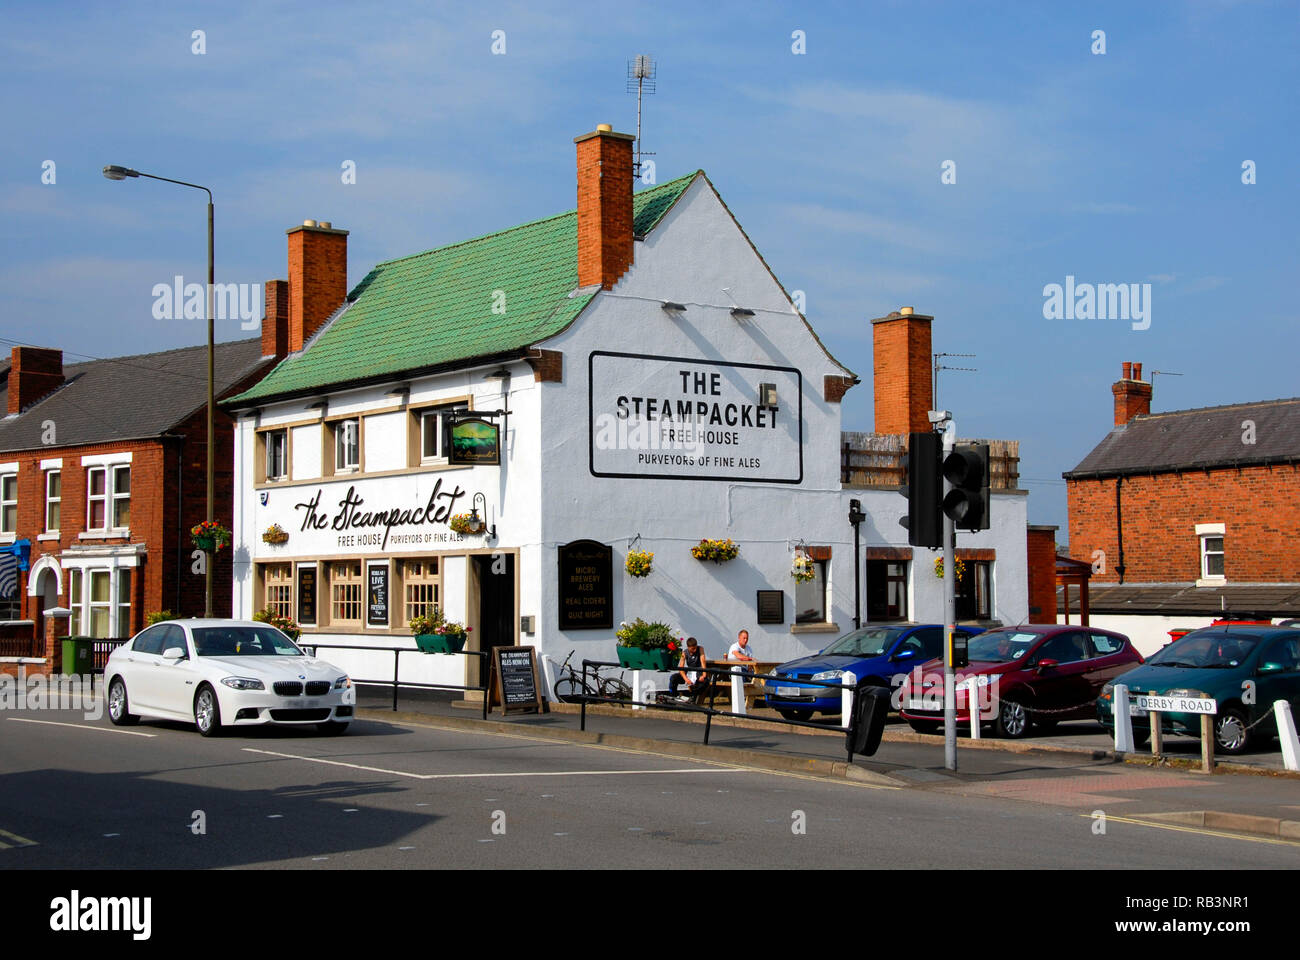 The Steampacket public house, Swanwick, Derbyshire, England Stock ...